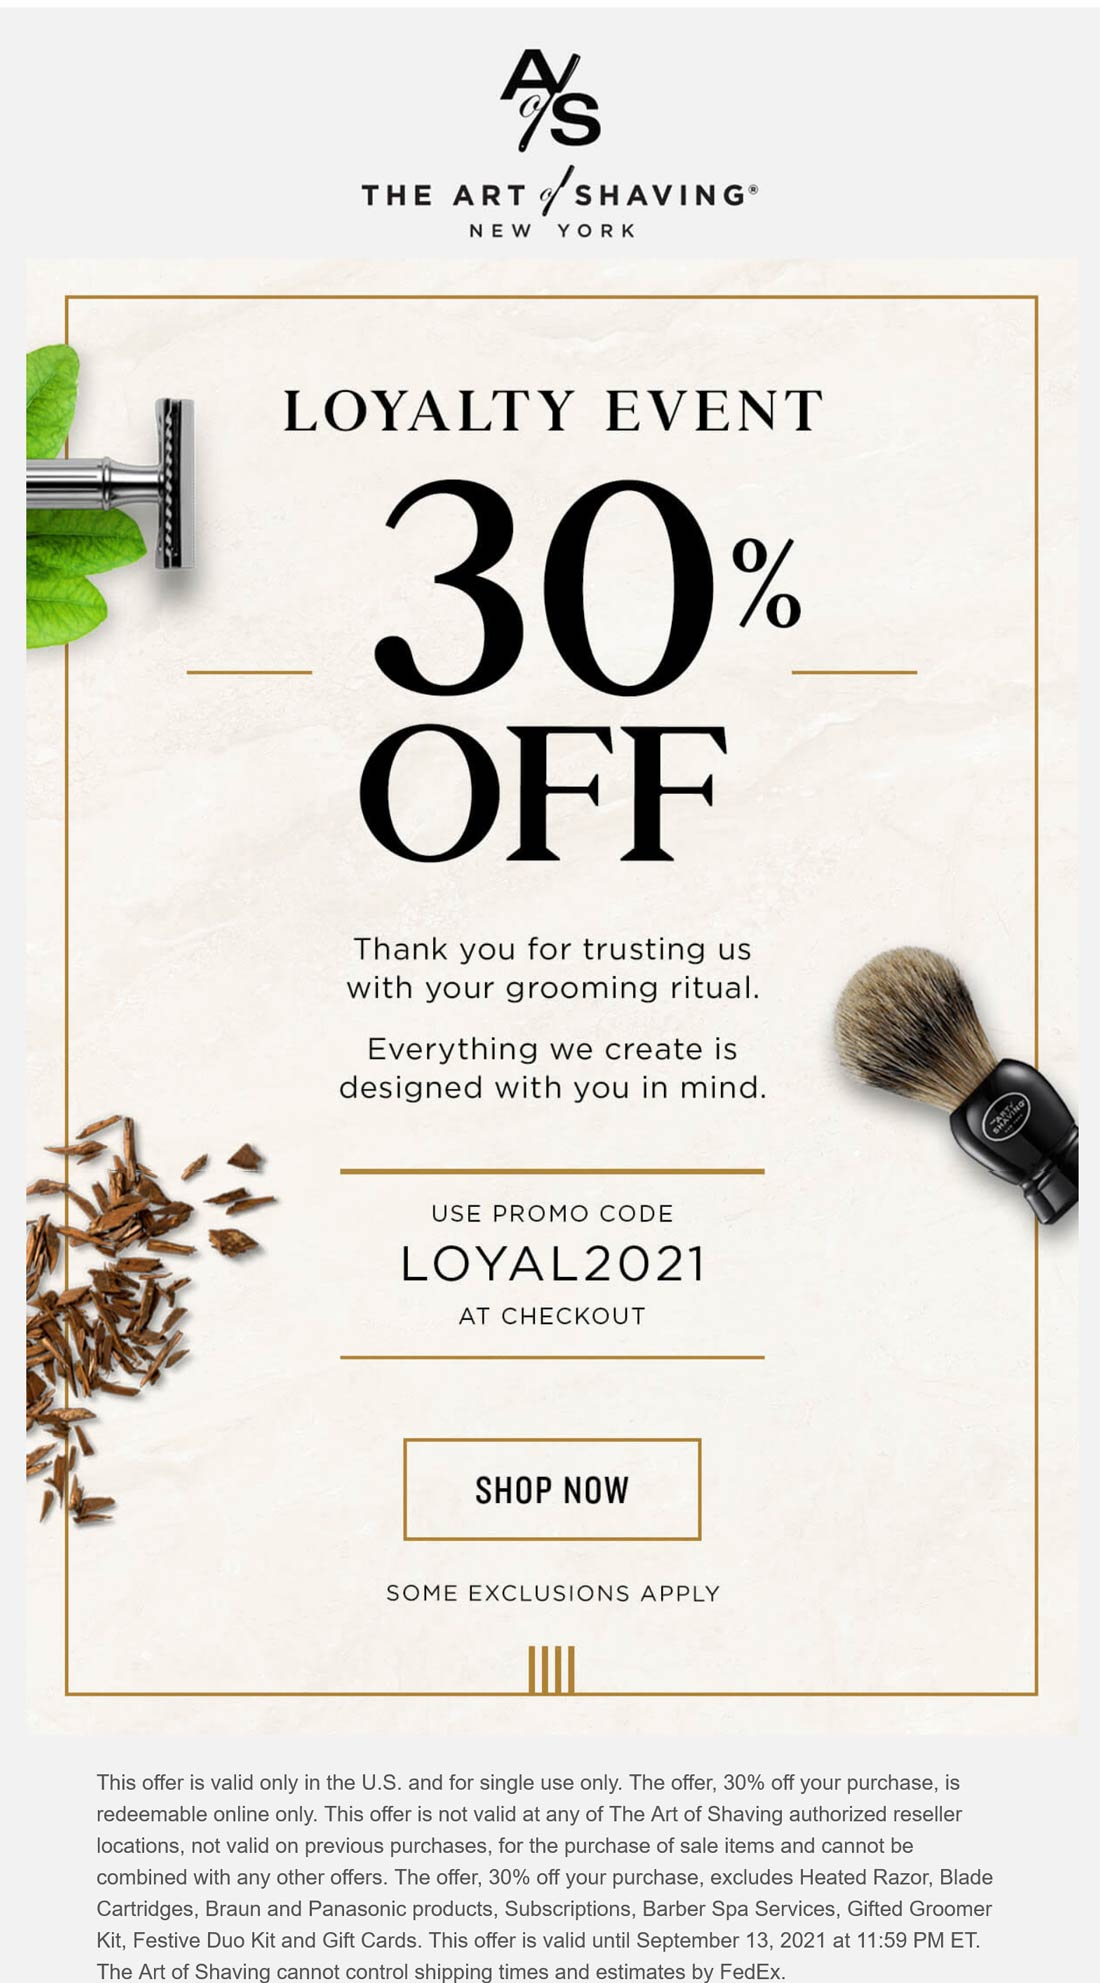 The Art of Shaving coupons & promo code for [October 2021]